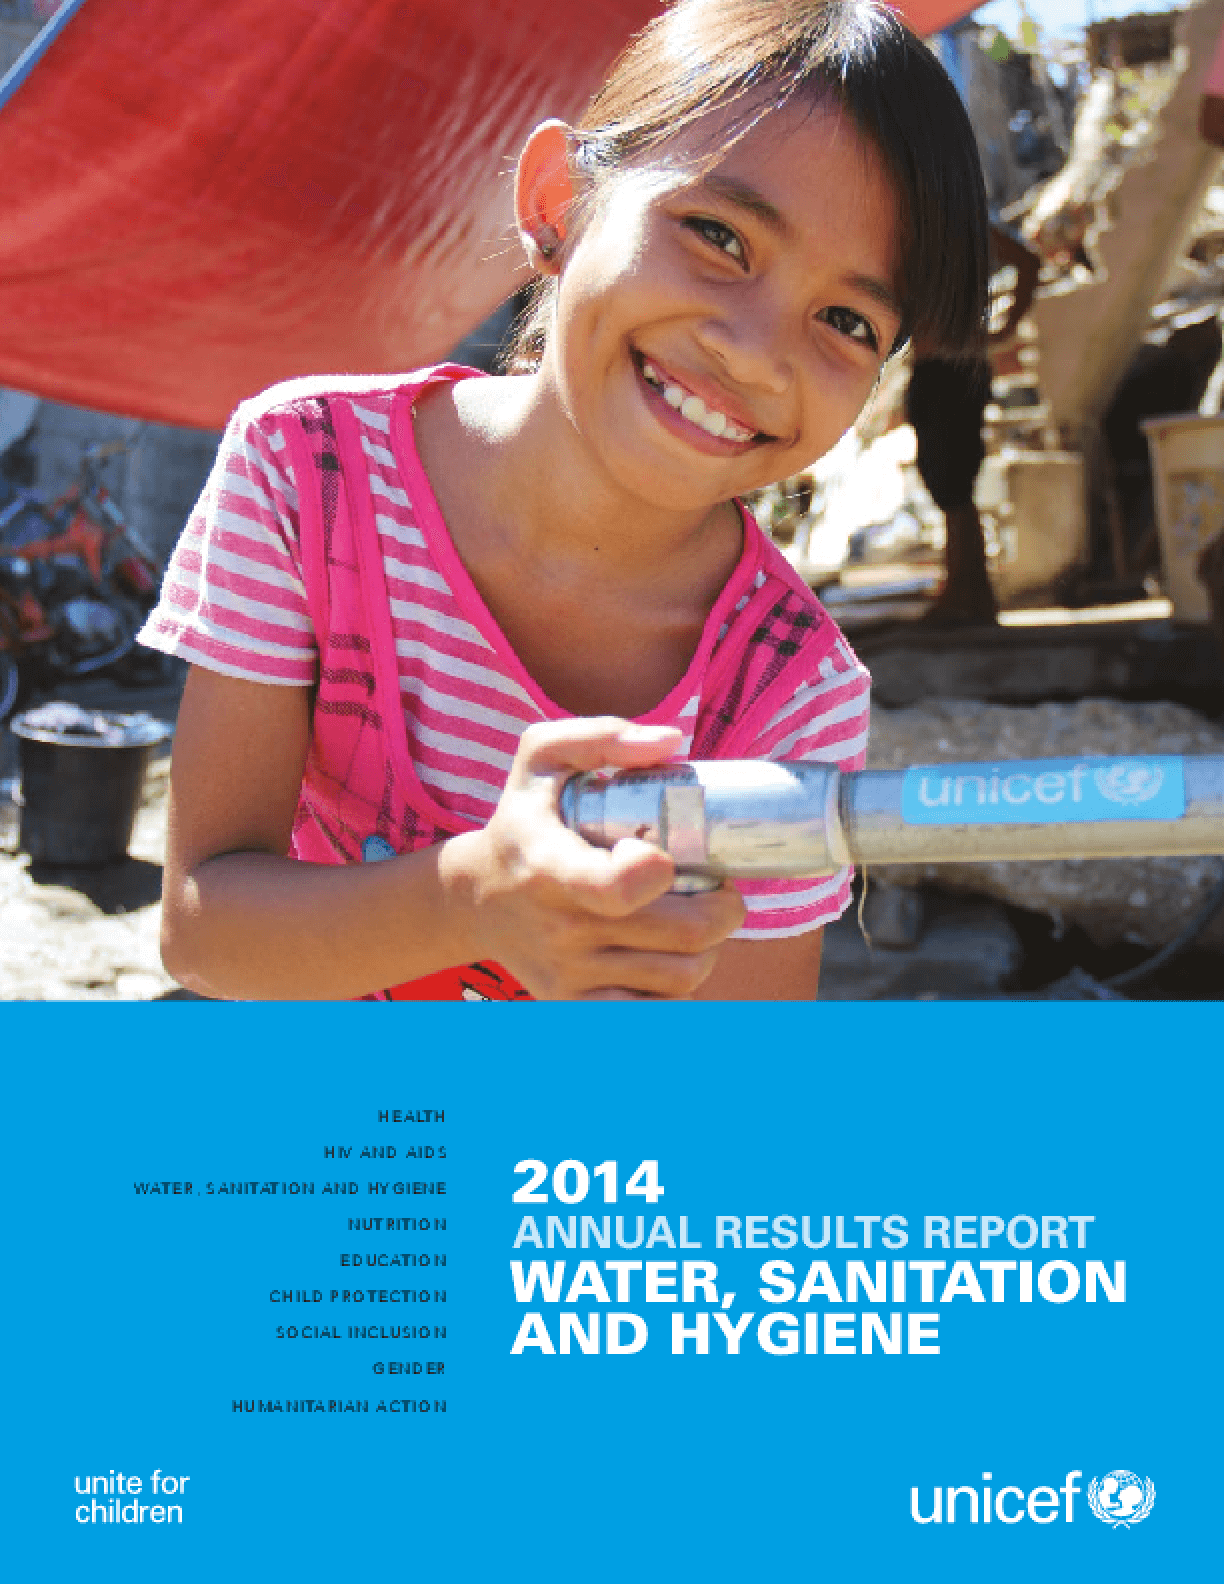 Annual Results Report 2014: Water, Sanitation, and Hygiene